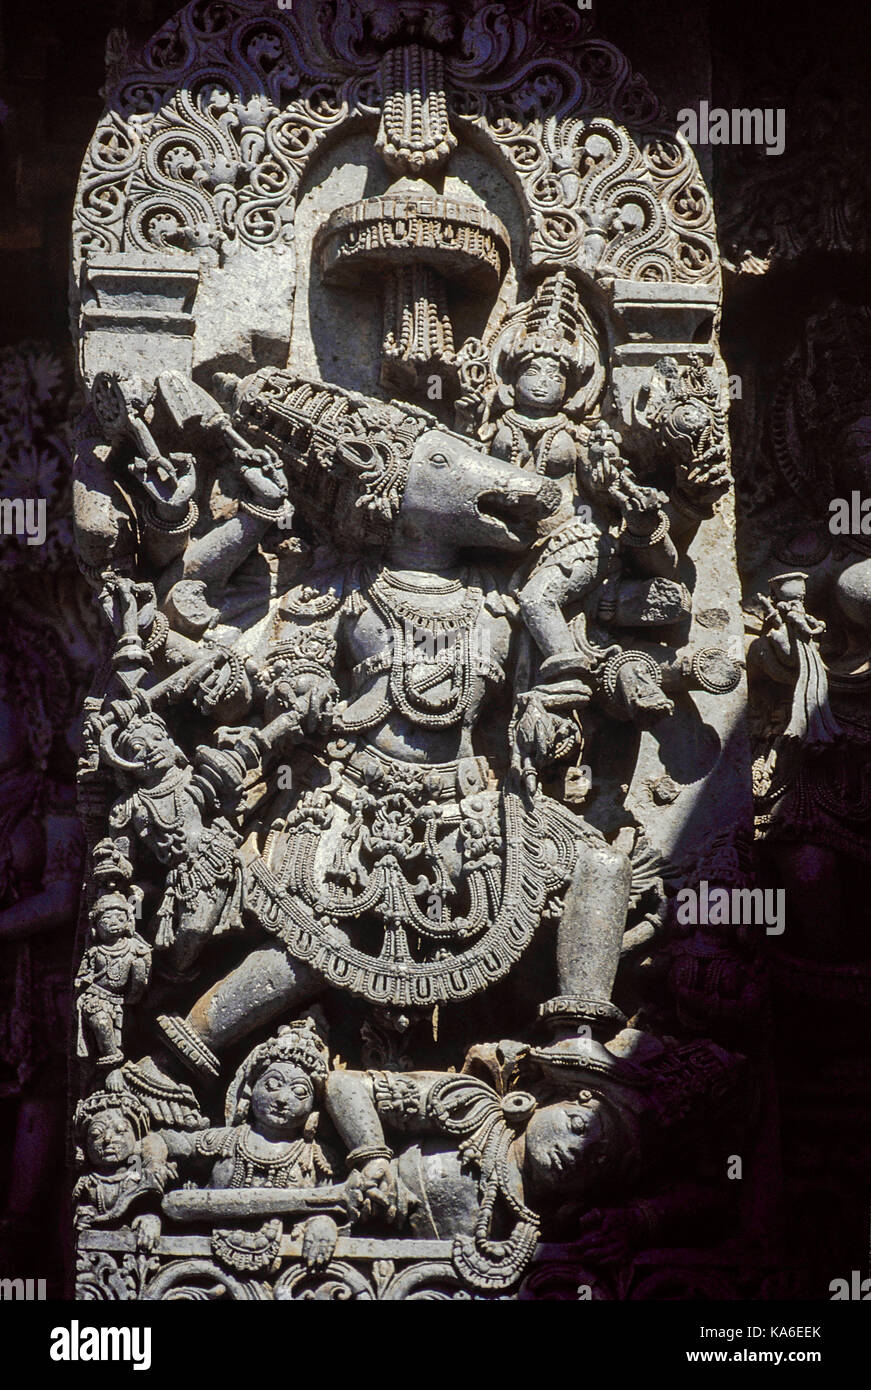 varaha avatar sculpture on wall, halebidu, Karnataka, India, Asia - Stock Image